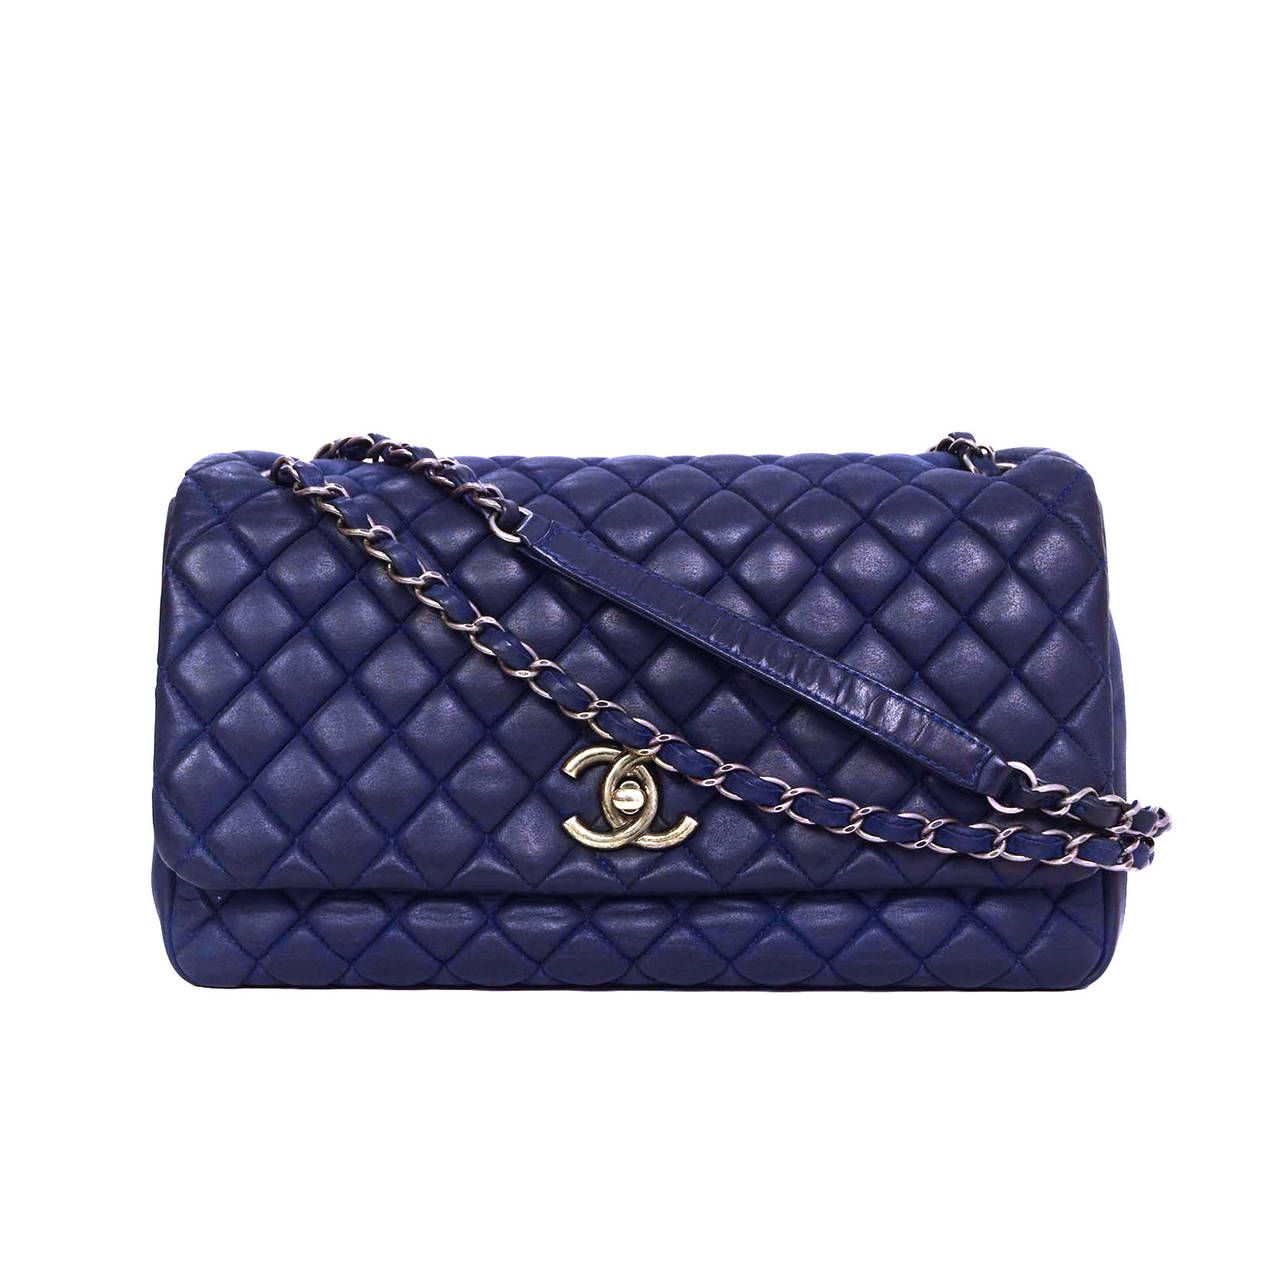 5c383567912c London Sale Replica Chanel A28601 Royalblue Sheepskin Leather Jumbo Flap  Bag Gold   COUCL   Bags, Chanel, Chanel glasses